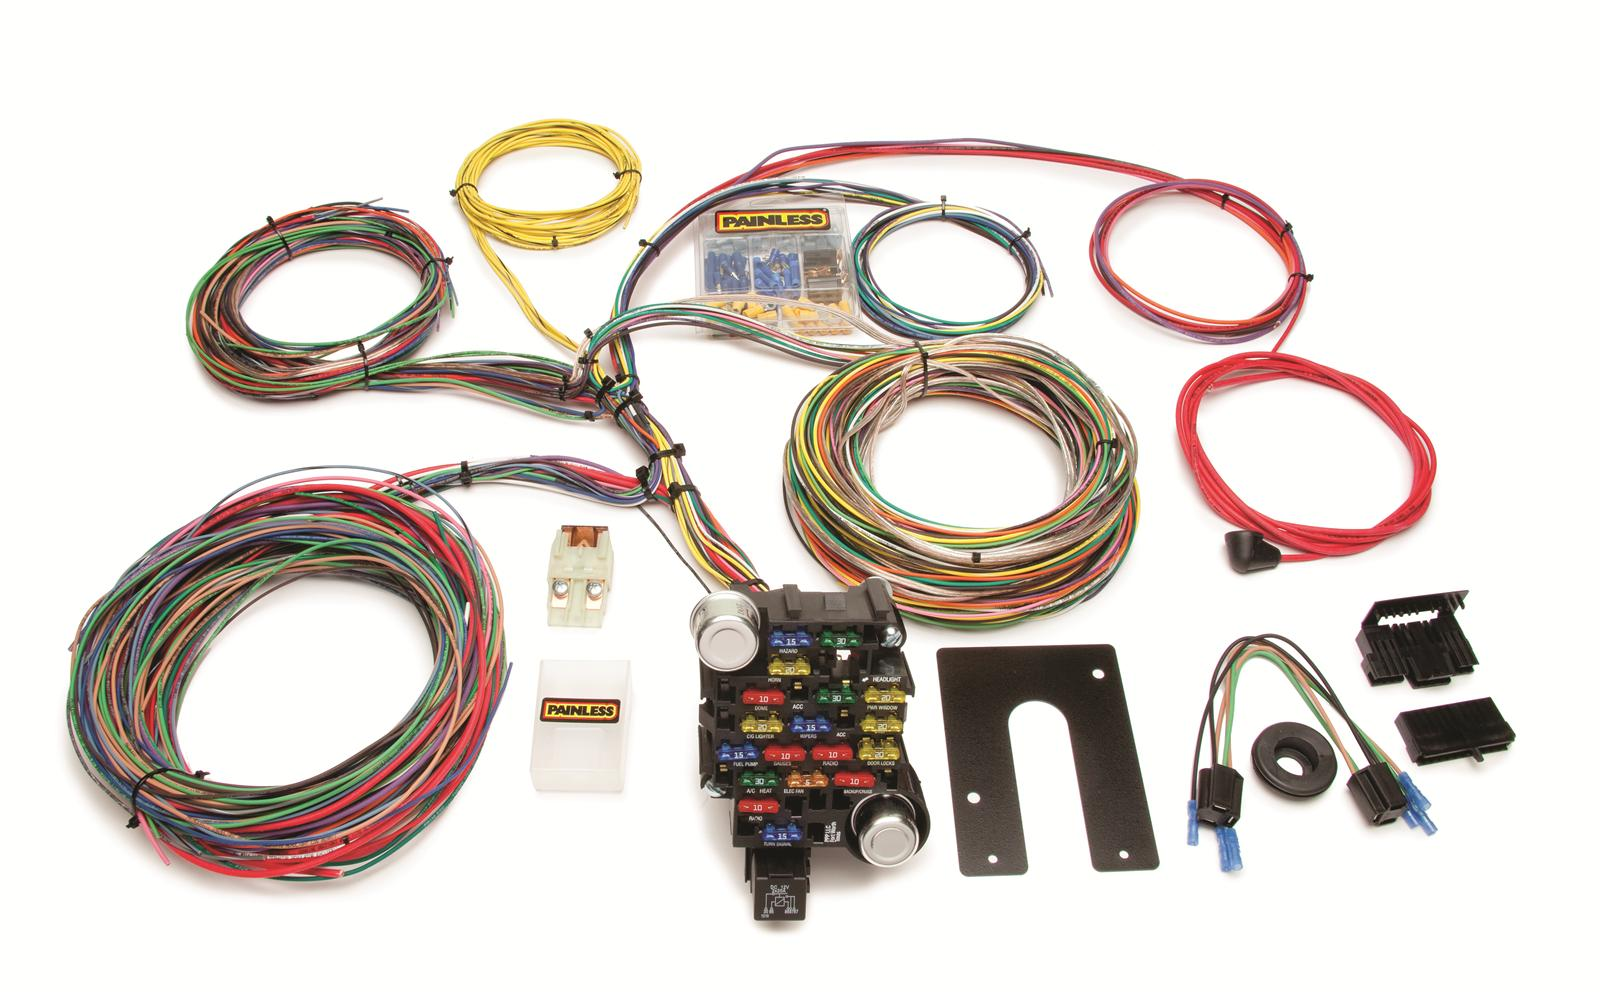 Painless Performance 28 Circuit Universal Harnesses 10202 Free Power Wheels Wiring Harness Download Diagram Schematic Shipping On Orders Over 99 At Summit Racing